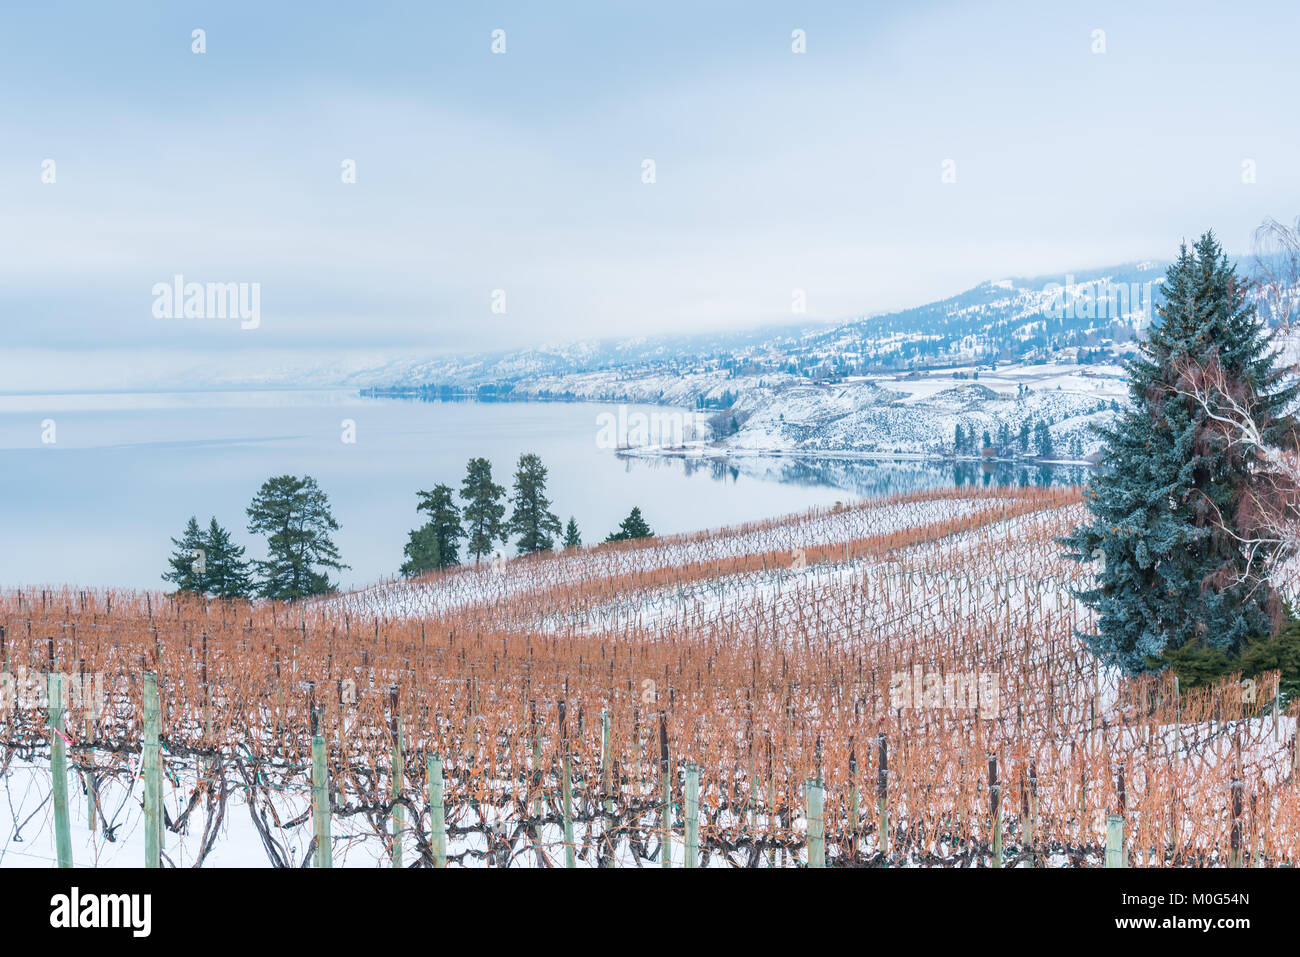 Rows of grapevines in snow covered vineyard with Okanagan Lake and mountains on foggy winter afternoon Stock Photo